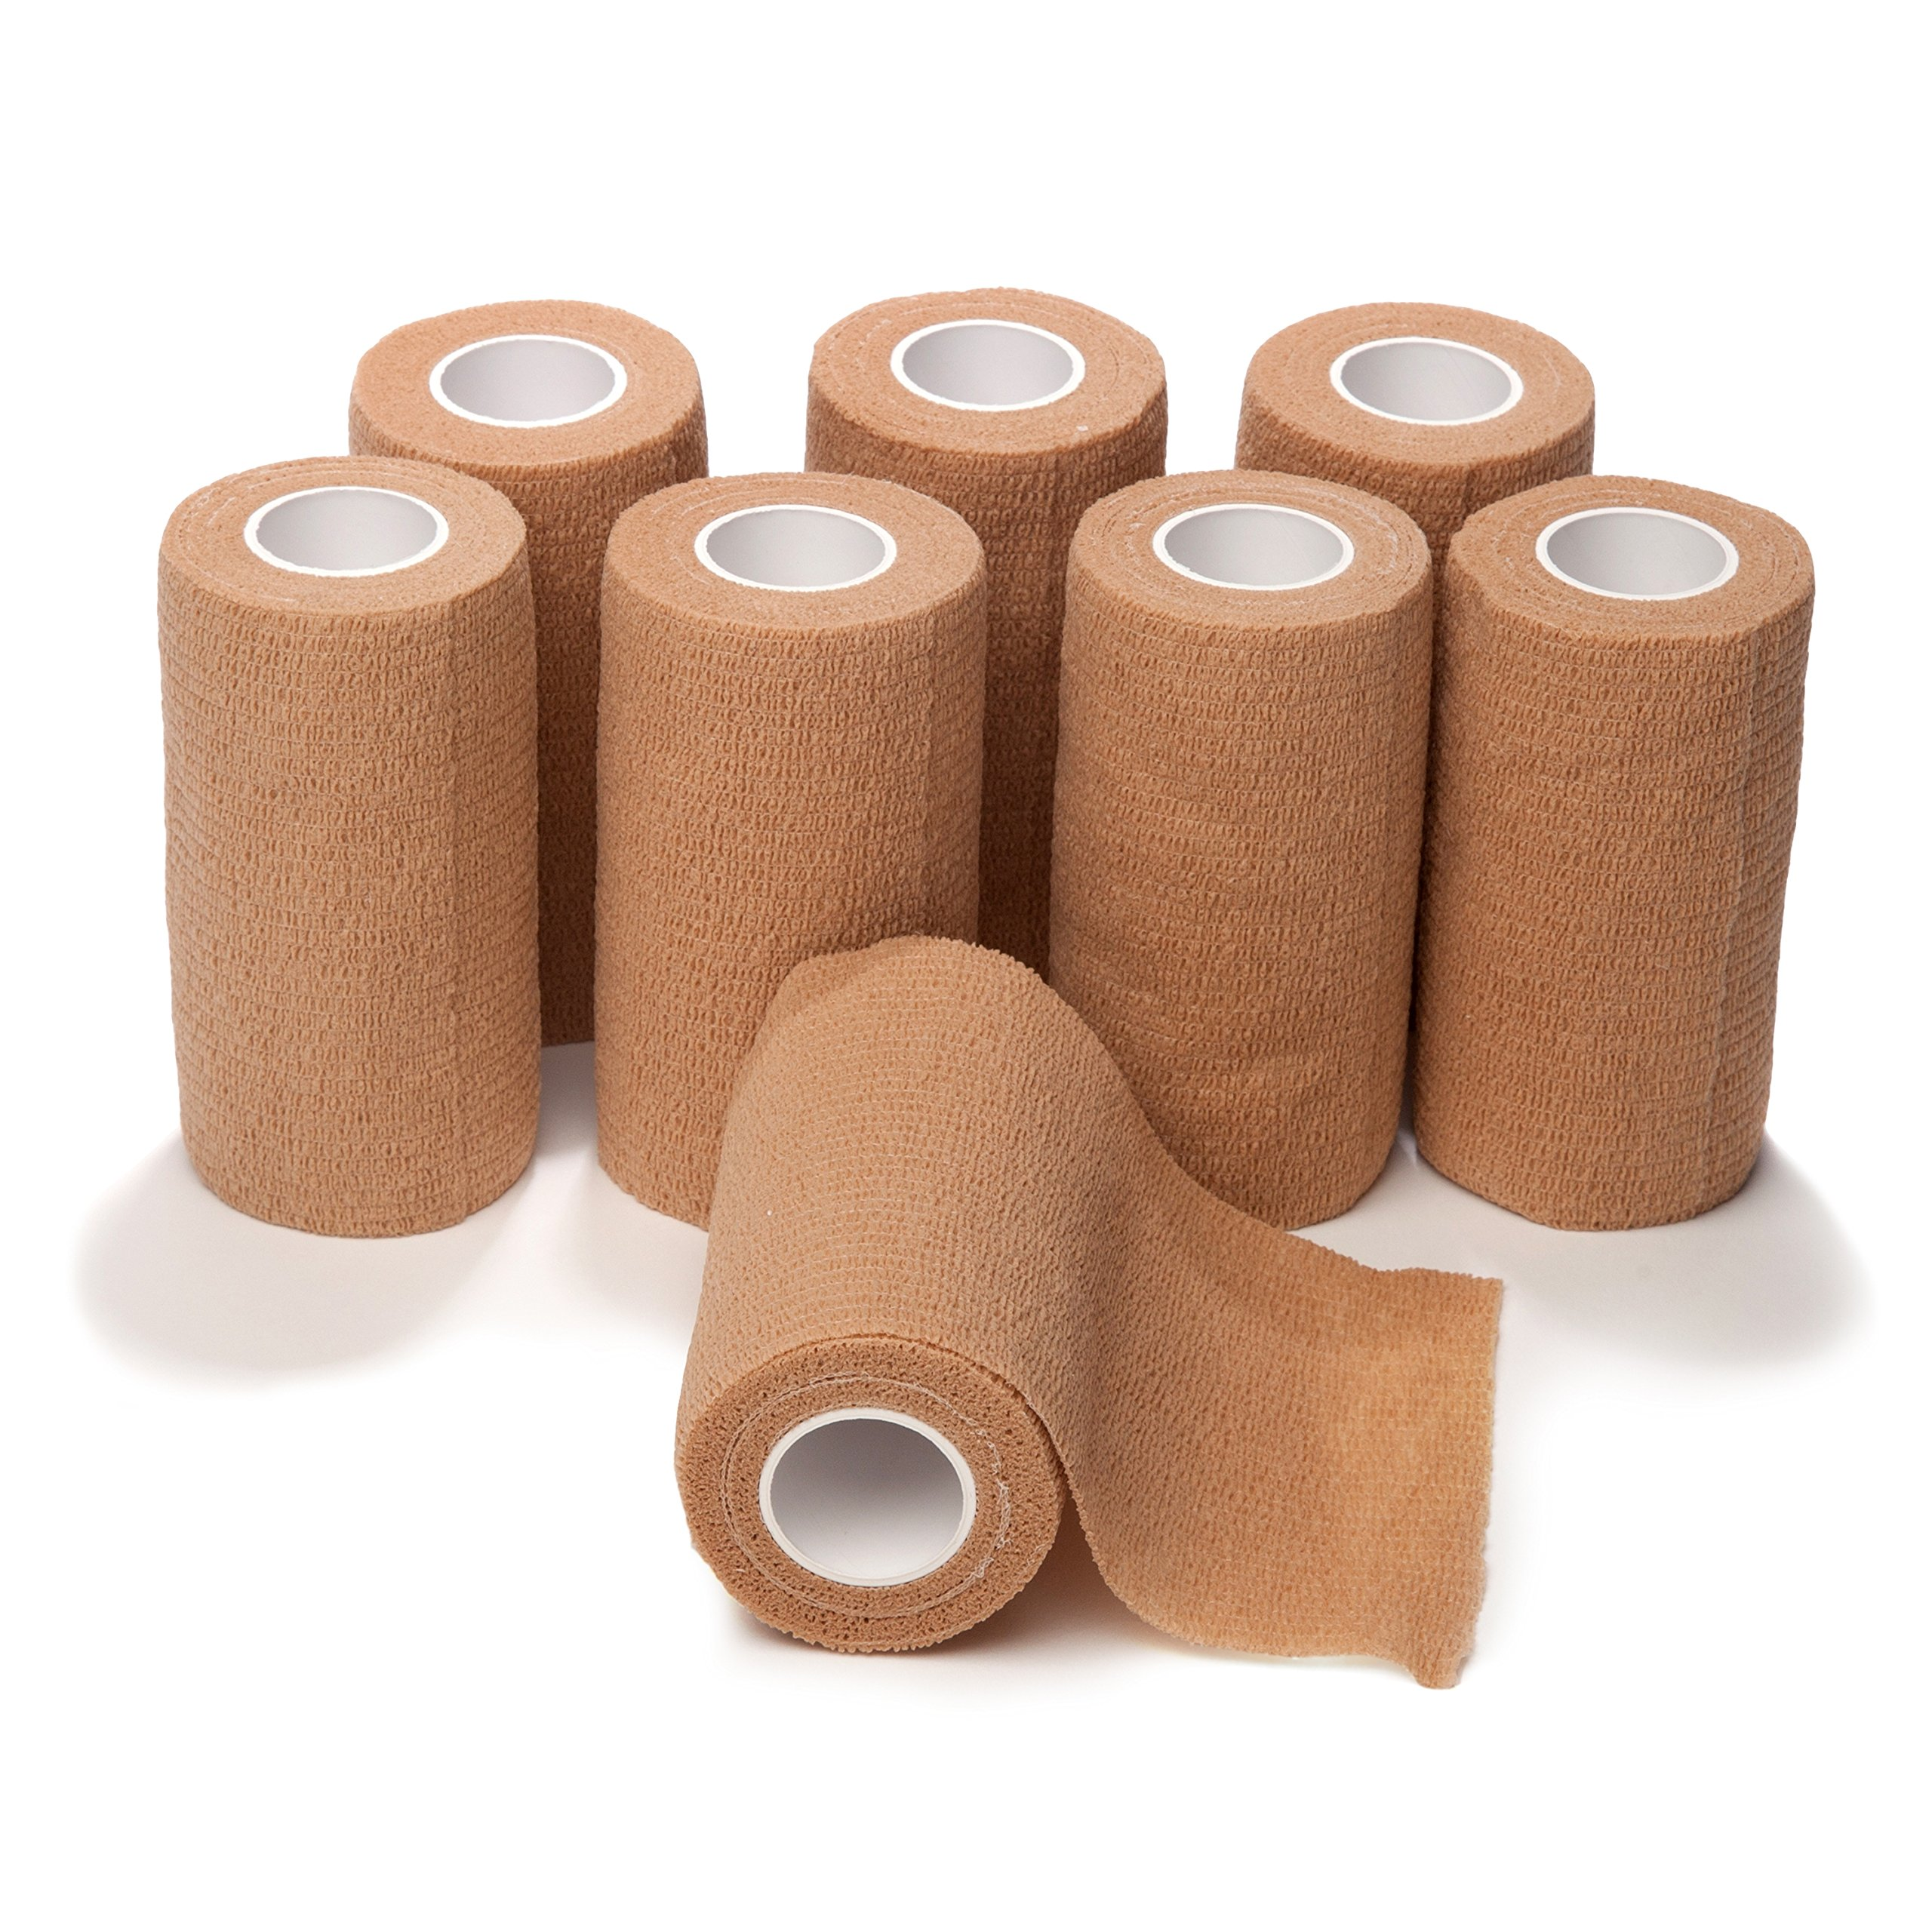 """8-Pack, 4"""" Wide x 5 Yards, Self-Adherent Cohesive Tape, Strong Sports Tape for Wrist, Ankle Sprains & Swelling, Self-Adhesive Bandage Rolls, Vet Tape Wrap, Brown Color, by California Basics"""